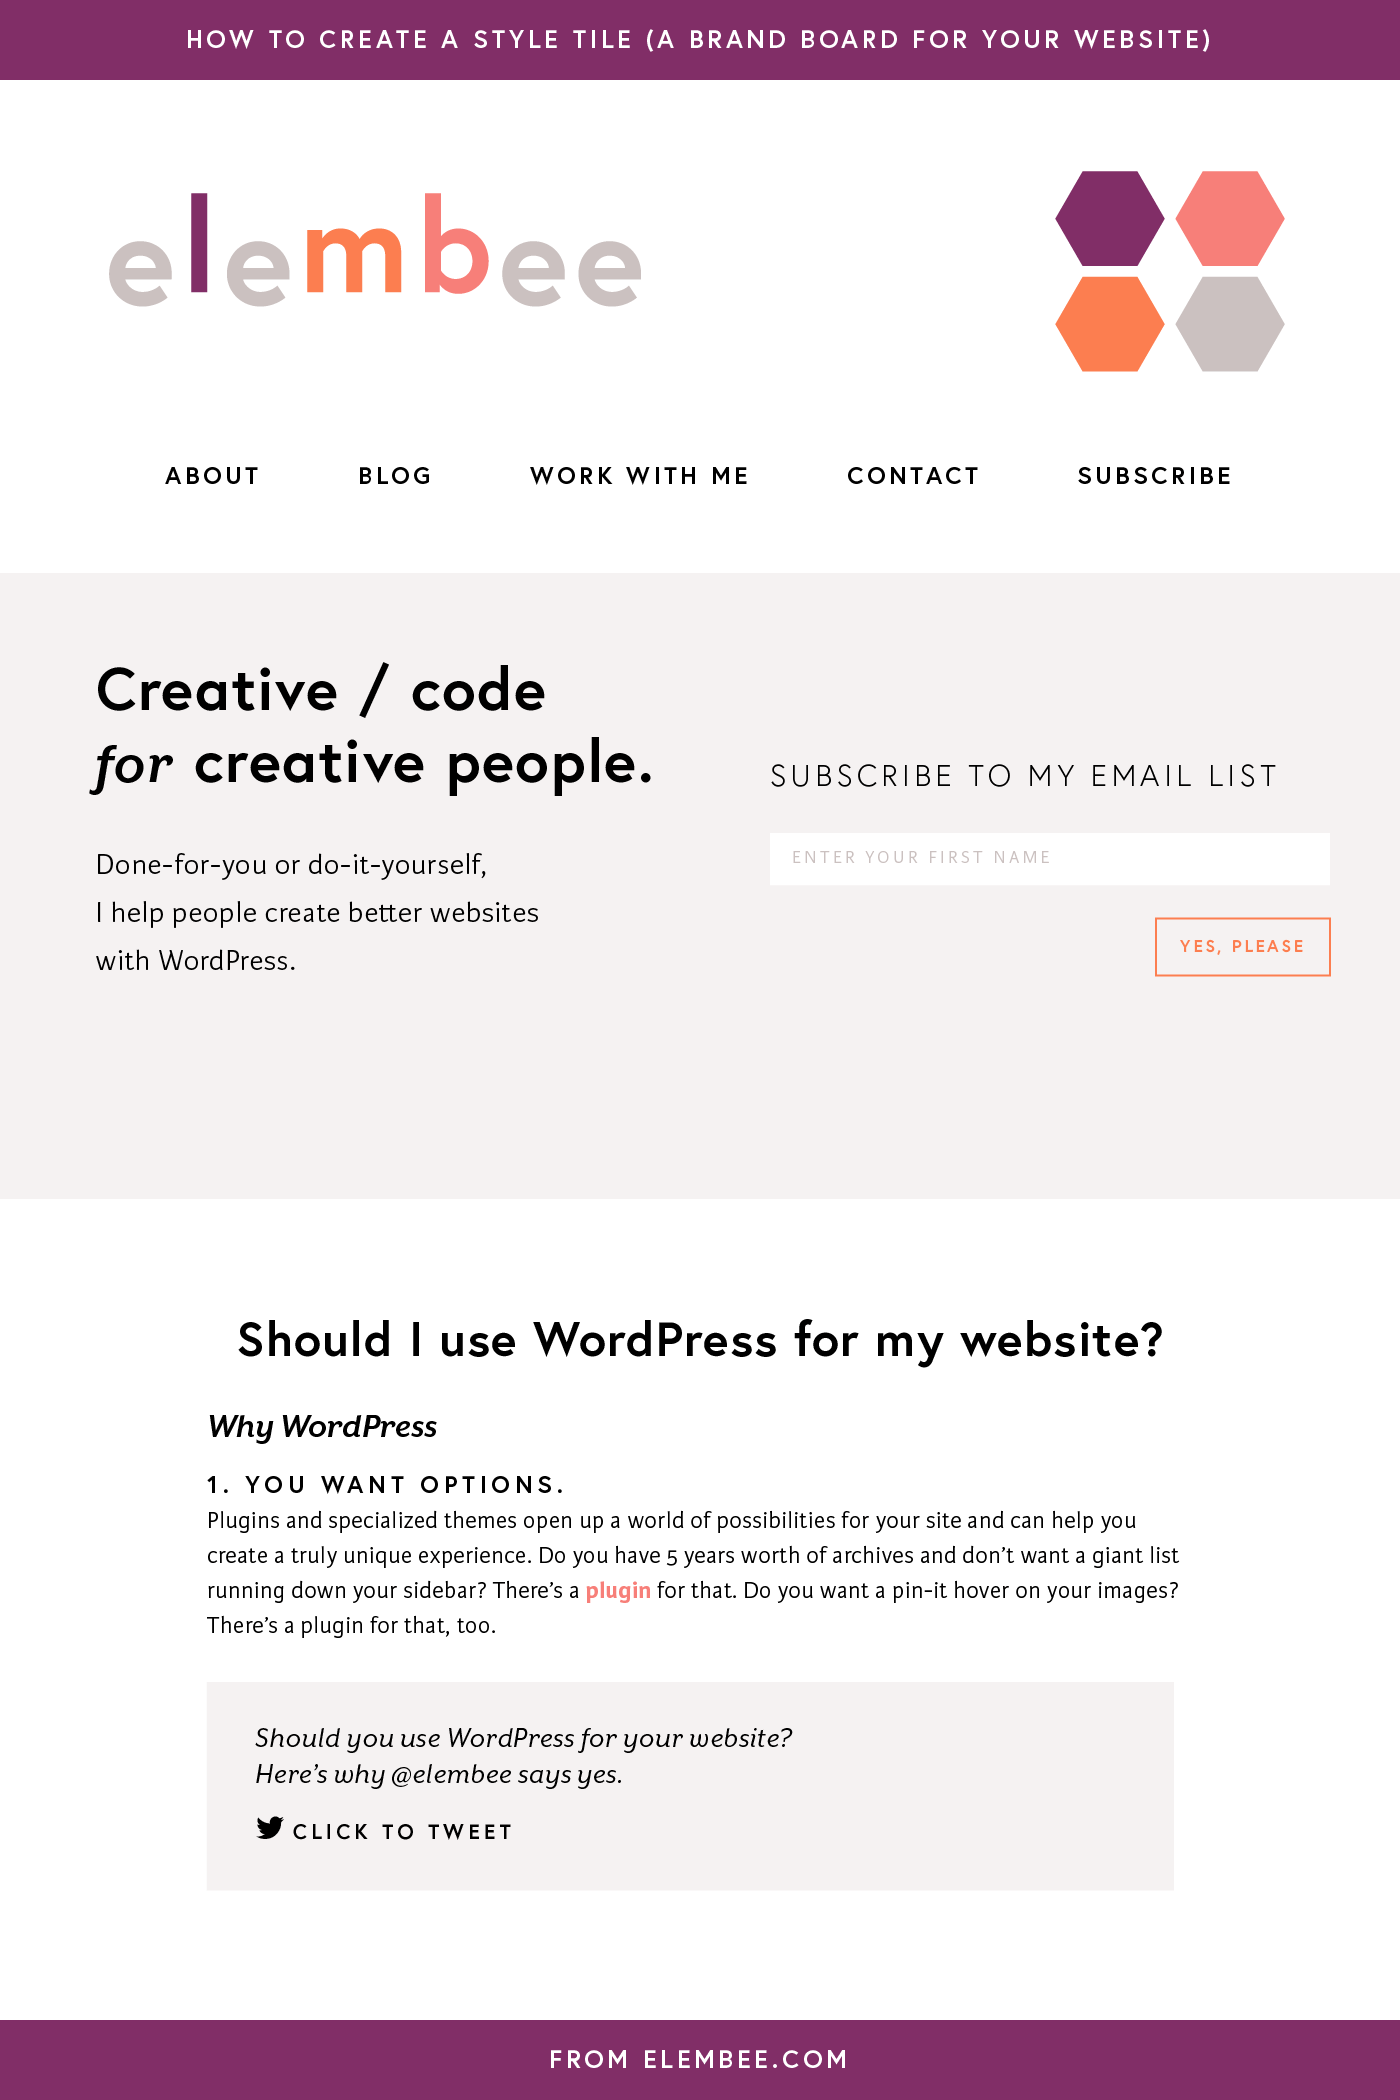 How to create a brand board or style tile for your website example